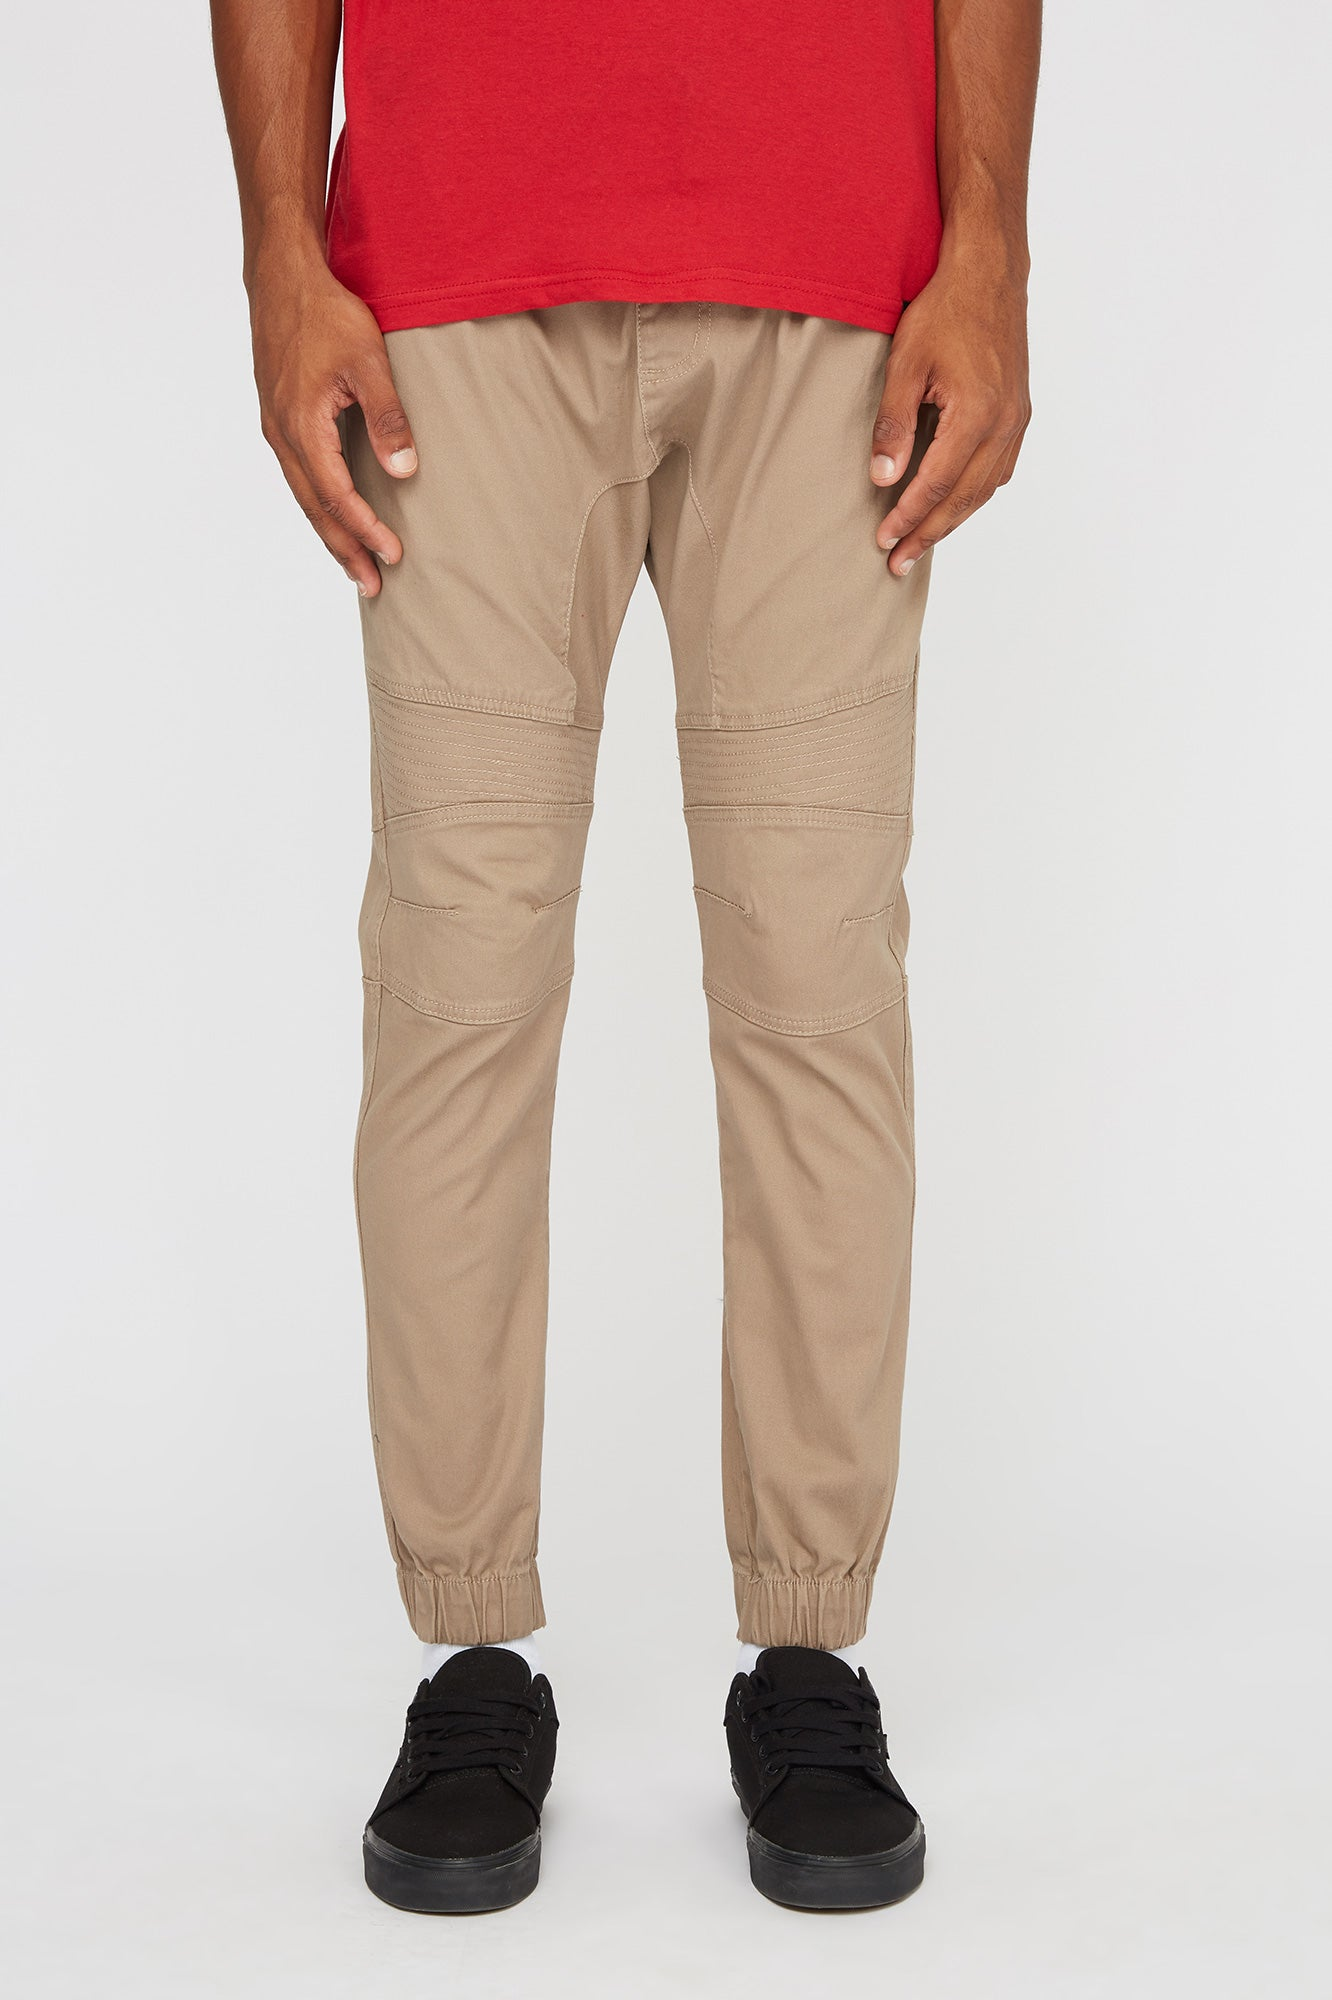 West49 Mens Moto Jogger